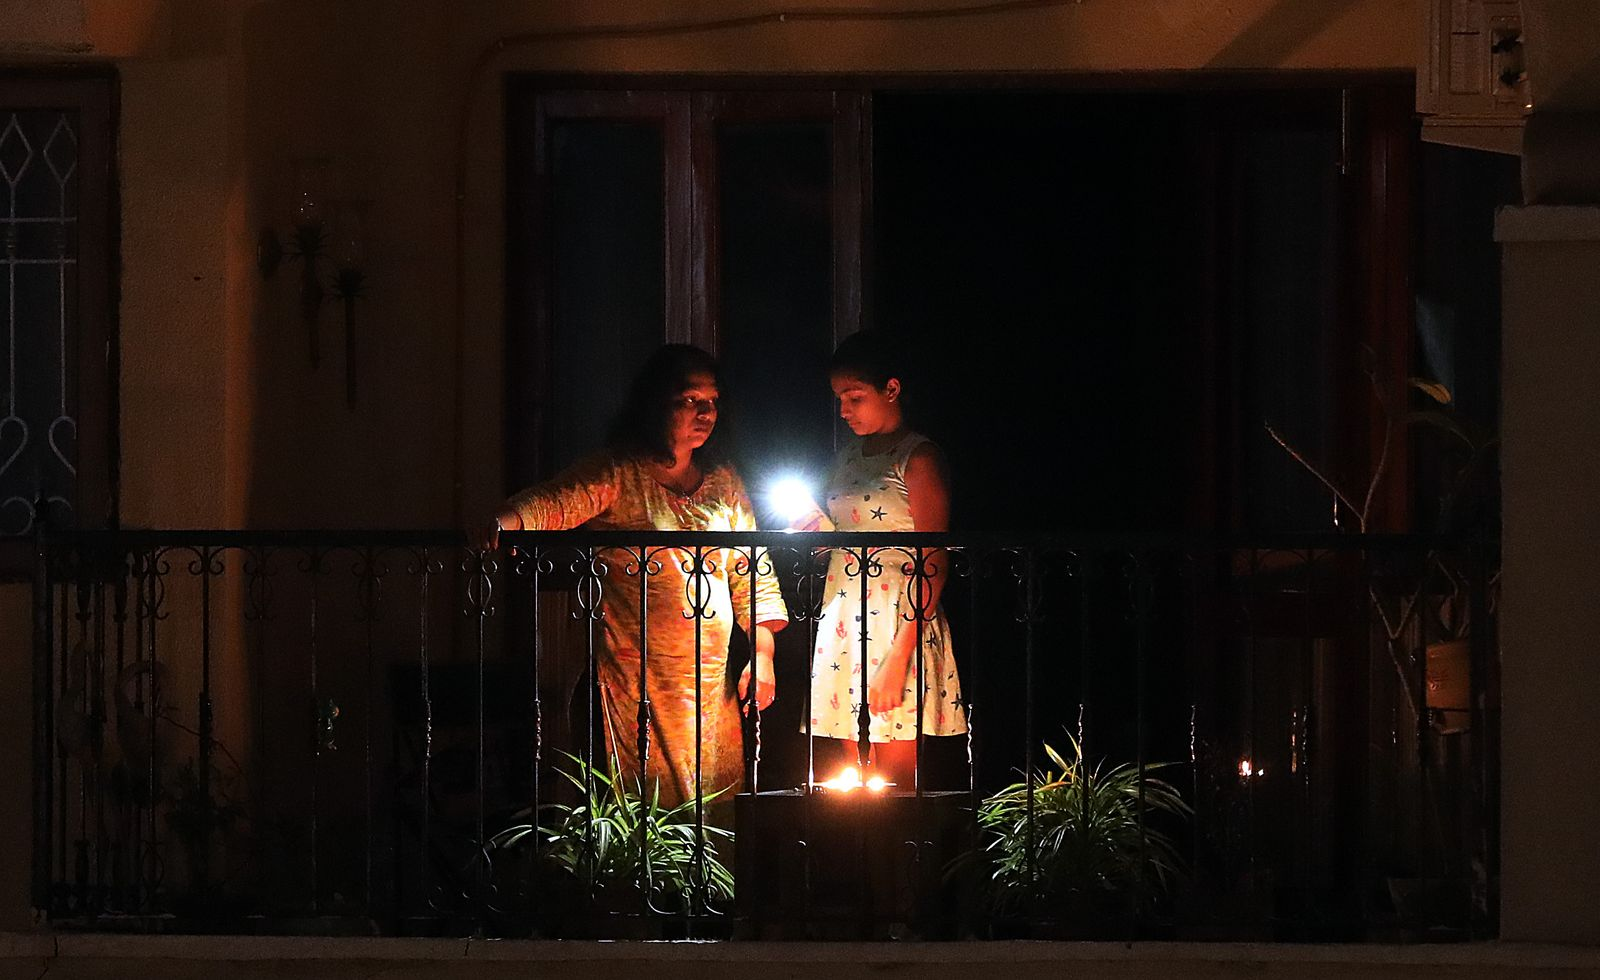 Indian prime minister Narendra Modi has urged Indian citizens to give out a symbolic message of unity on the fight against Coronavirus by lighting a candle, diya (earthen lamp) or by flashing a torchlight, New Delhi, India - 05 Apr 2020